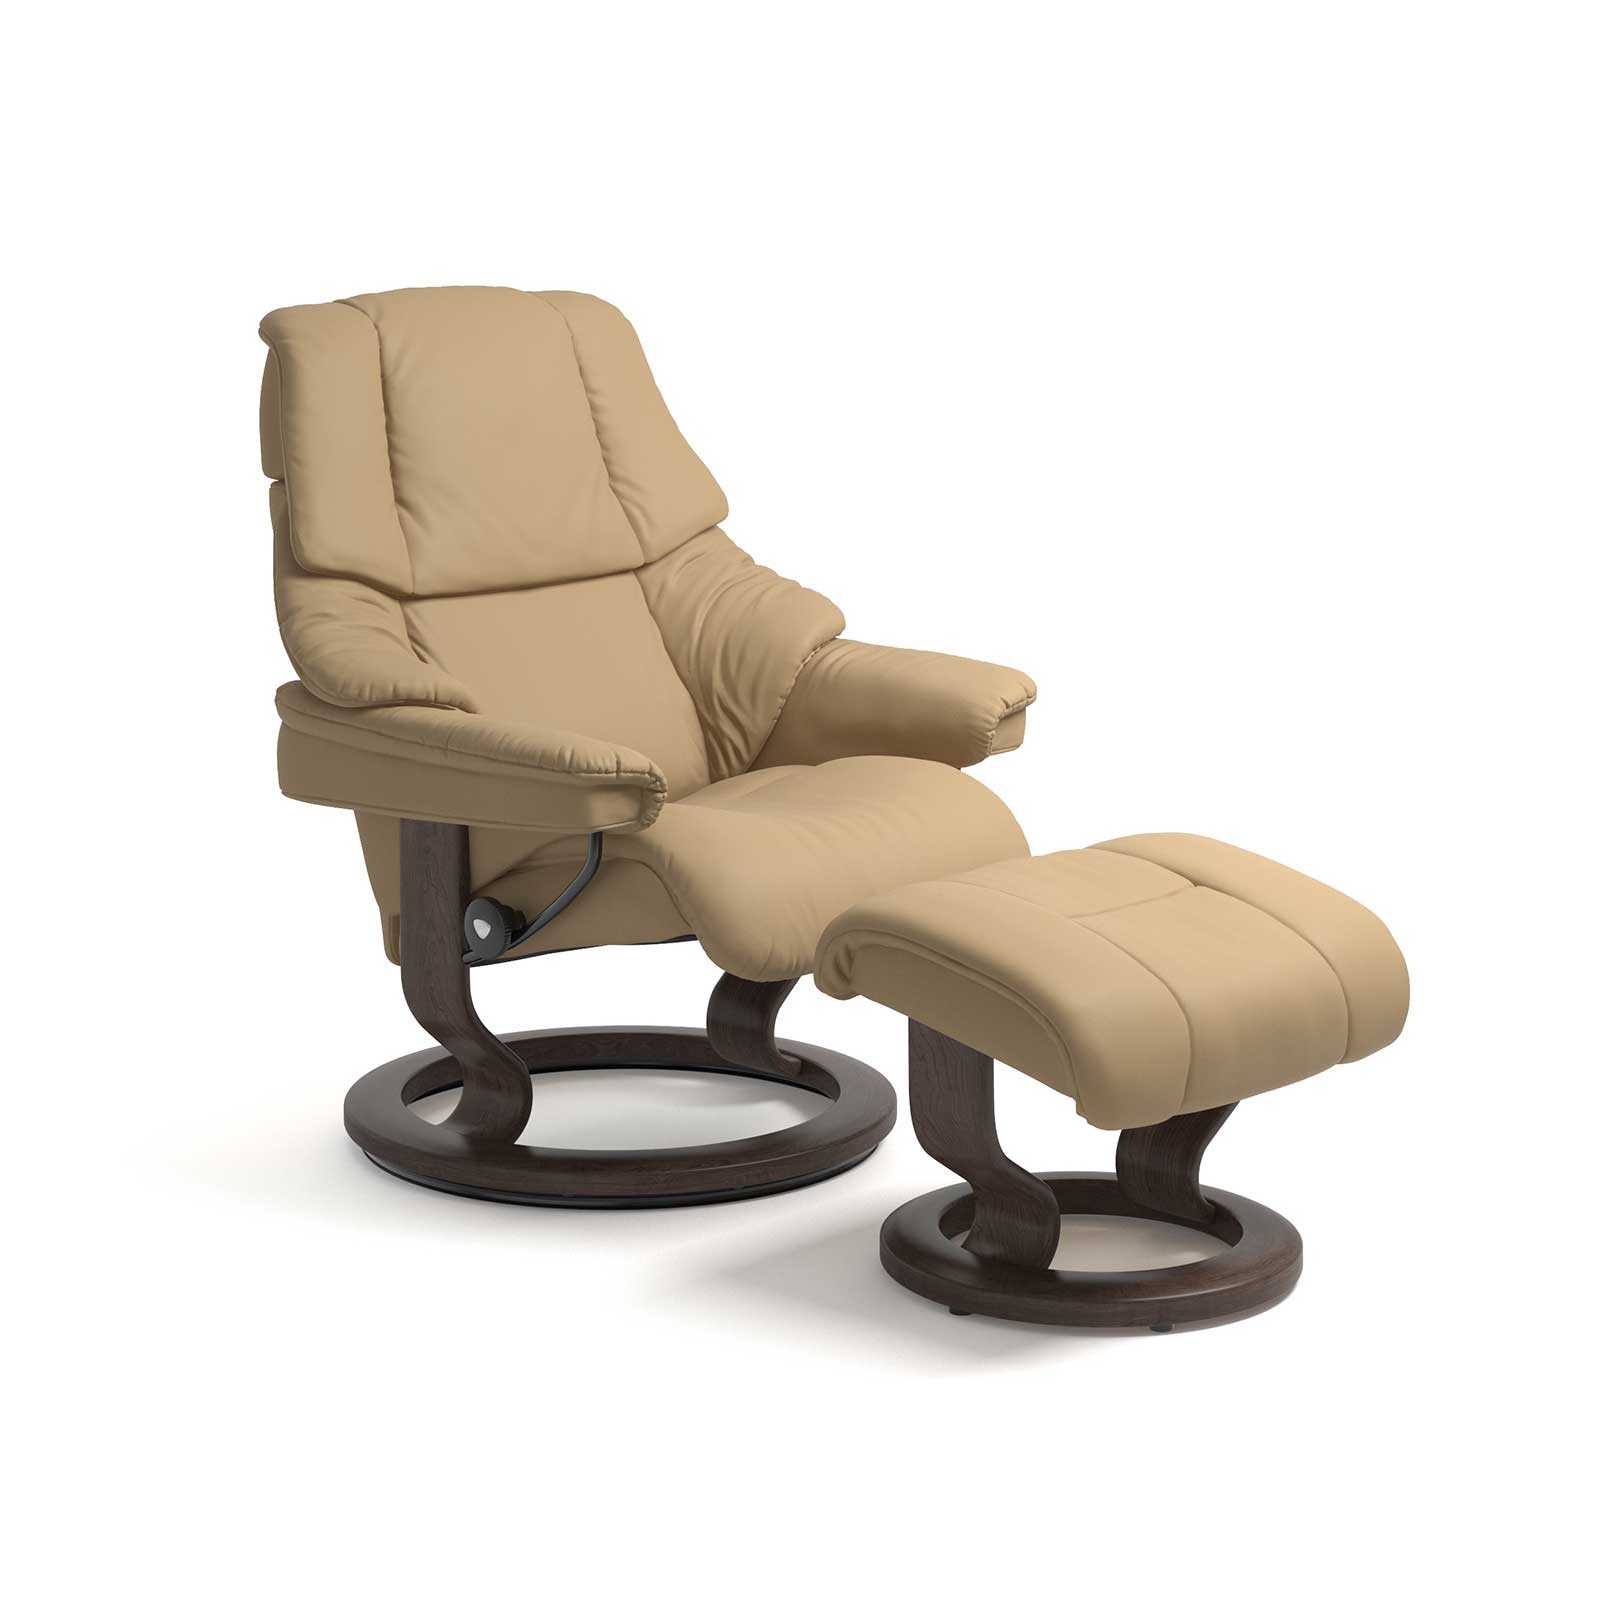 Stressless Sessel Reno Paloma Sand Mit Hocker Stressless